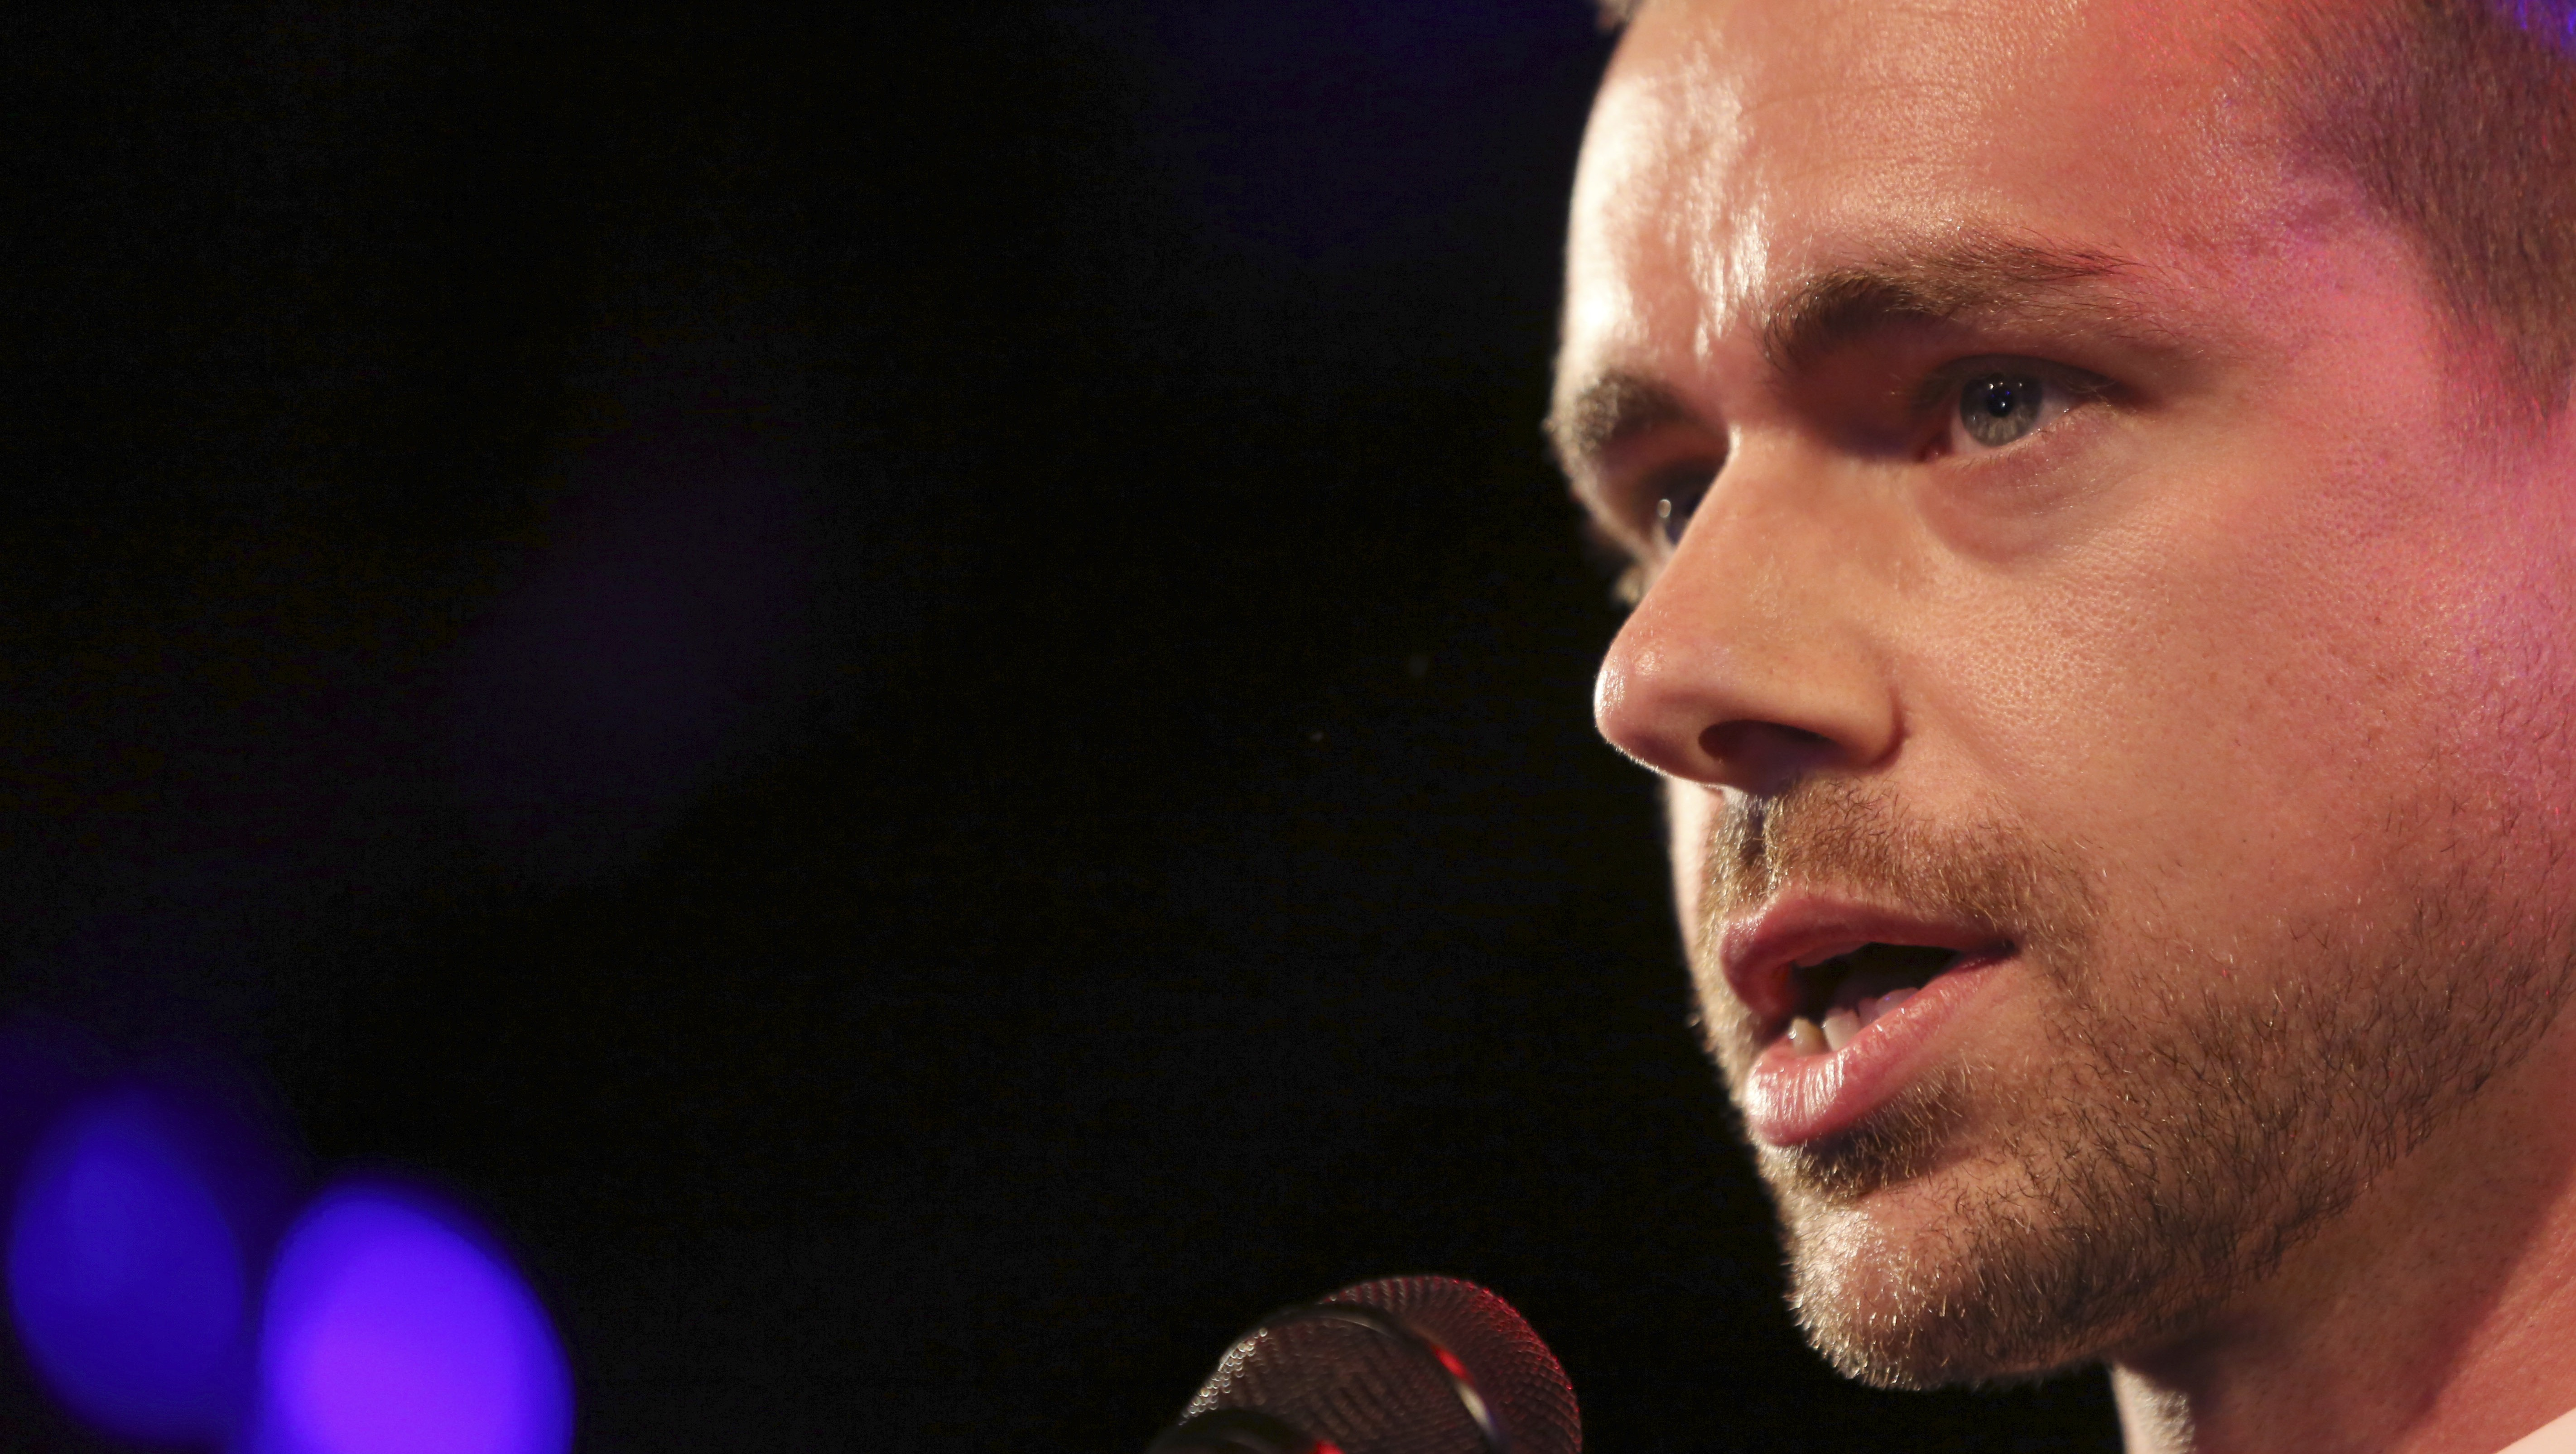 Twitter co-Founder Jack Dorsey speaks at a campaign fundraiser for Democratic Candidate for Public Advocate Reshma Saujani, Wednesday, April 24, 2013 in New York. (AP Photo/Mary Altaffer)